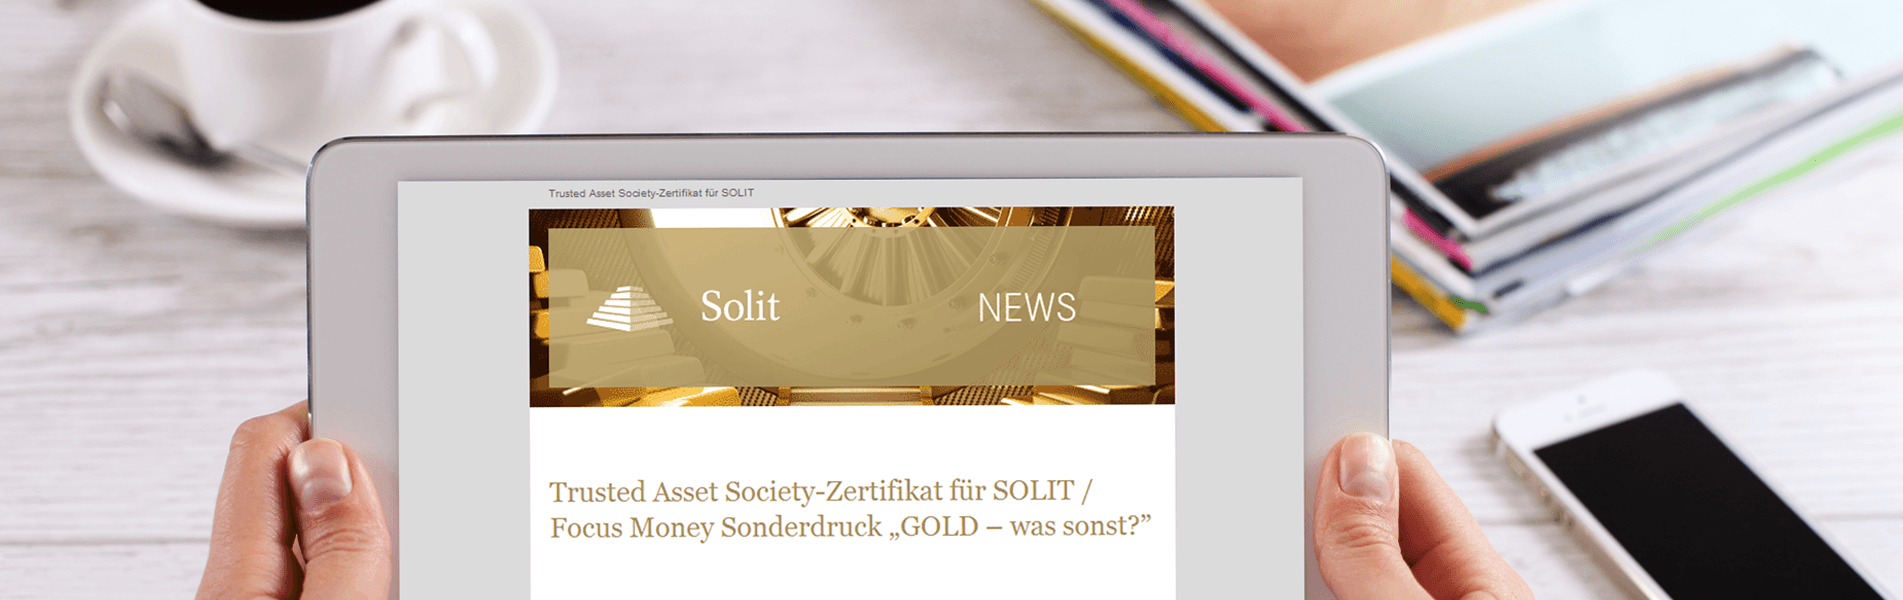 Newsletter SOLIT - Sliderbild